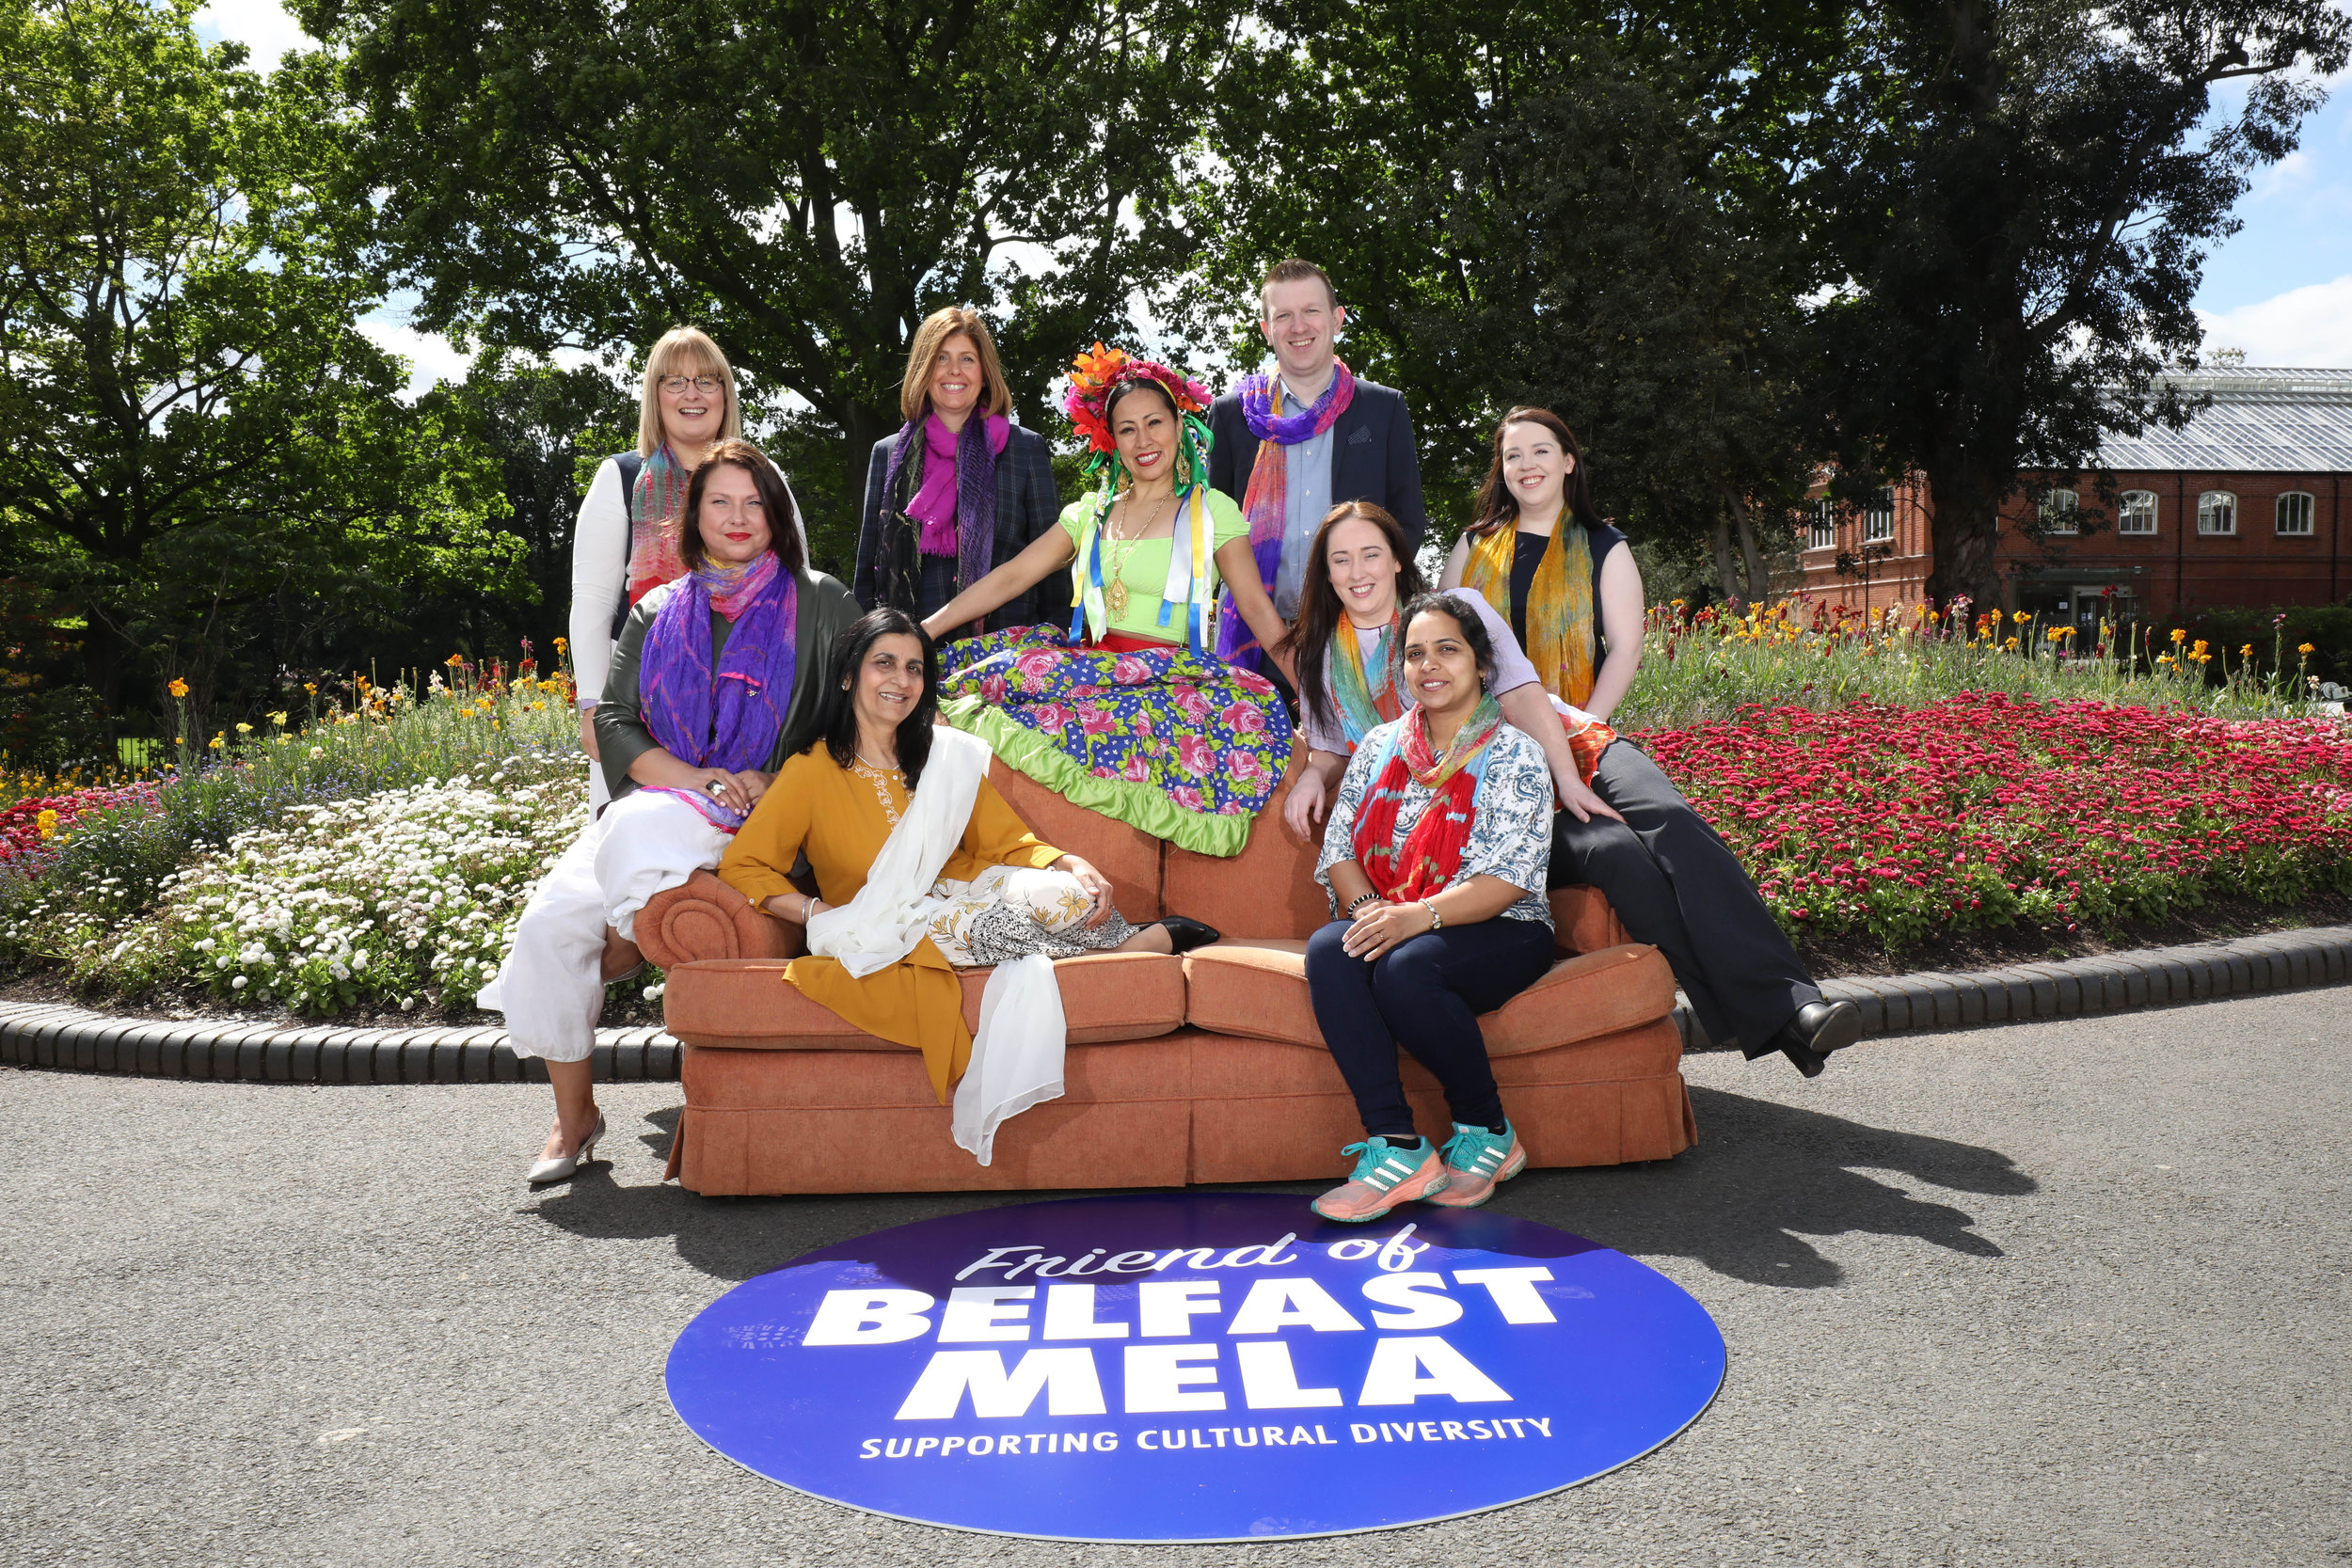 Friends of Belfast Mela gathered in Botanic Gardens to launch ArtsEkta's new diversity initiative. Pictured (l to r - back row) are Gillian Orr, Phoenix Natural Gas; Claire McBride, Olenick; Caroline van der Feltz, Danske Bank; Mexican dancer Mayte Segura; John Boyd, Hannon Travel; Kelly Clifford, First Trust and Ciara Smyth, Belfast Harbour with Nisha Tandon, ArtsEkta and Annapurna Nallaka, AllState seated on the 'Friends' sofa. (©Press Eye/Darren Kidd)